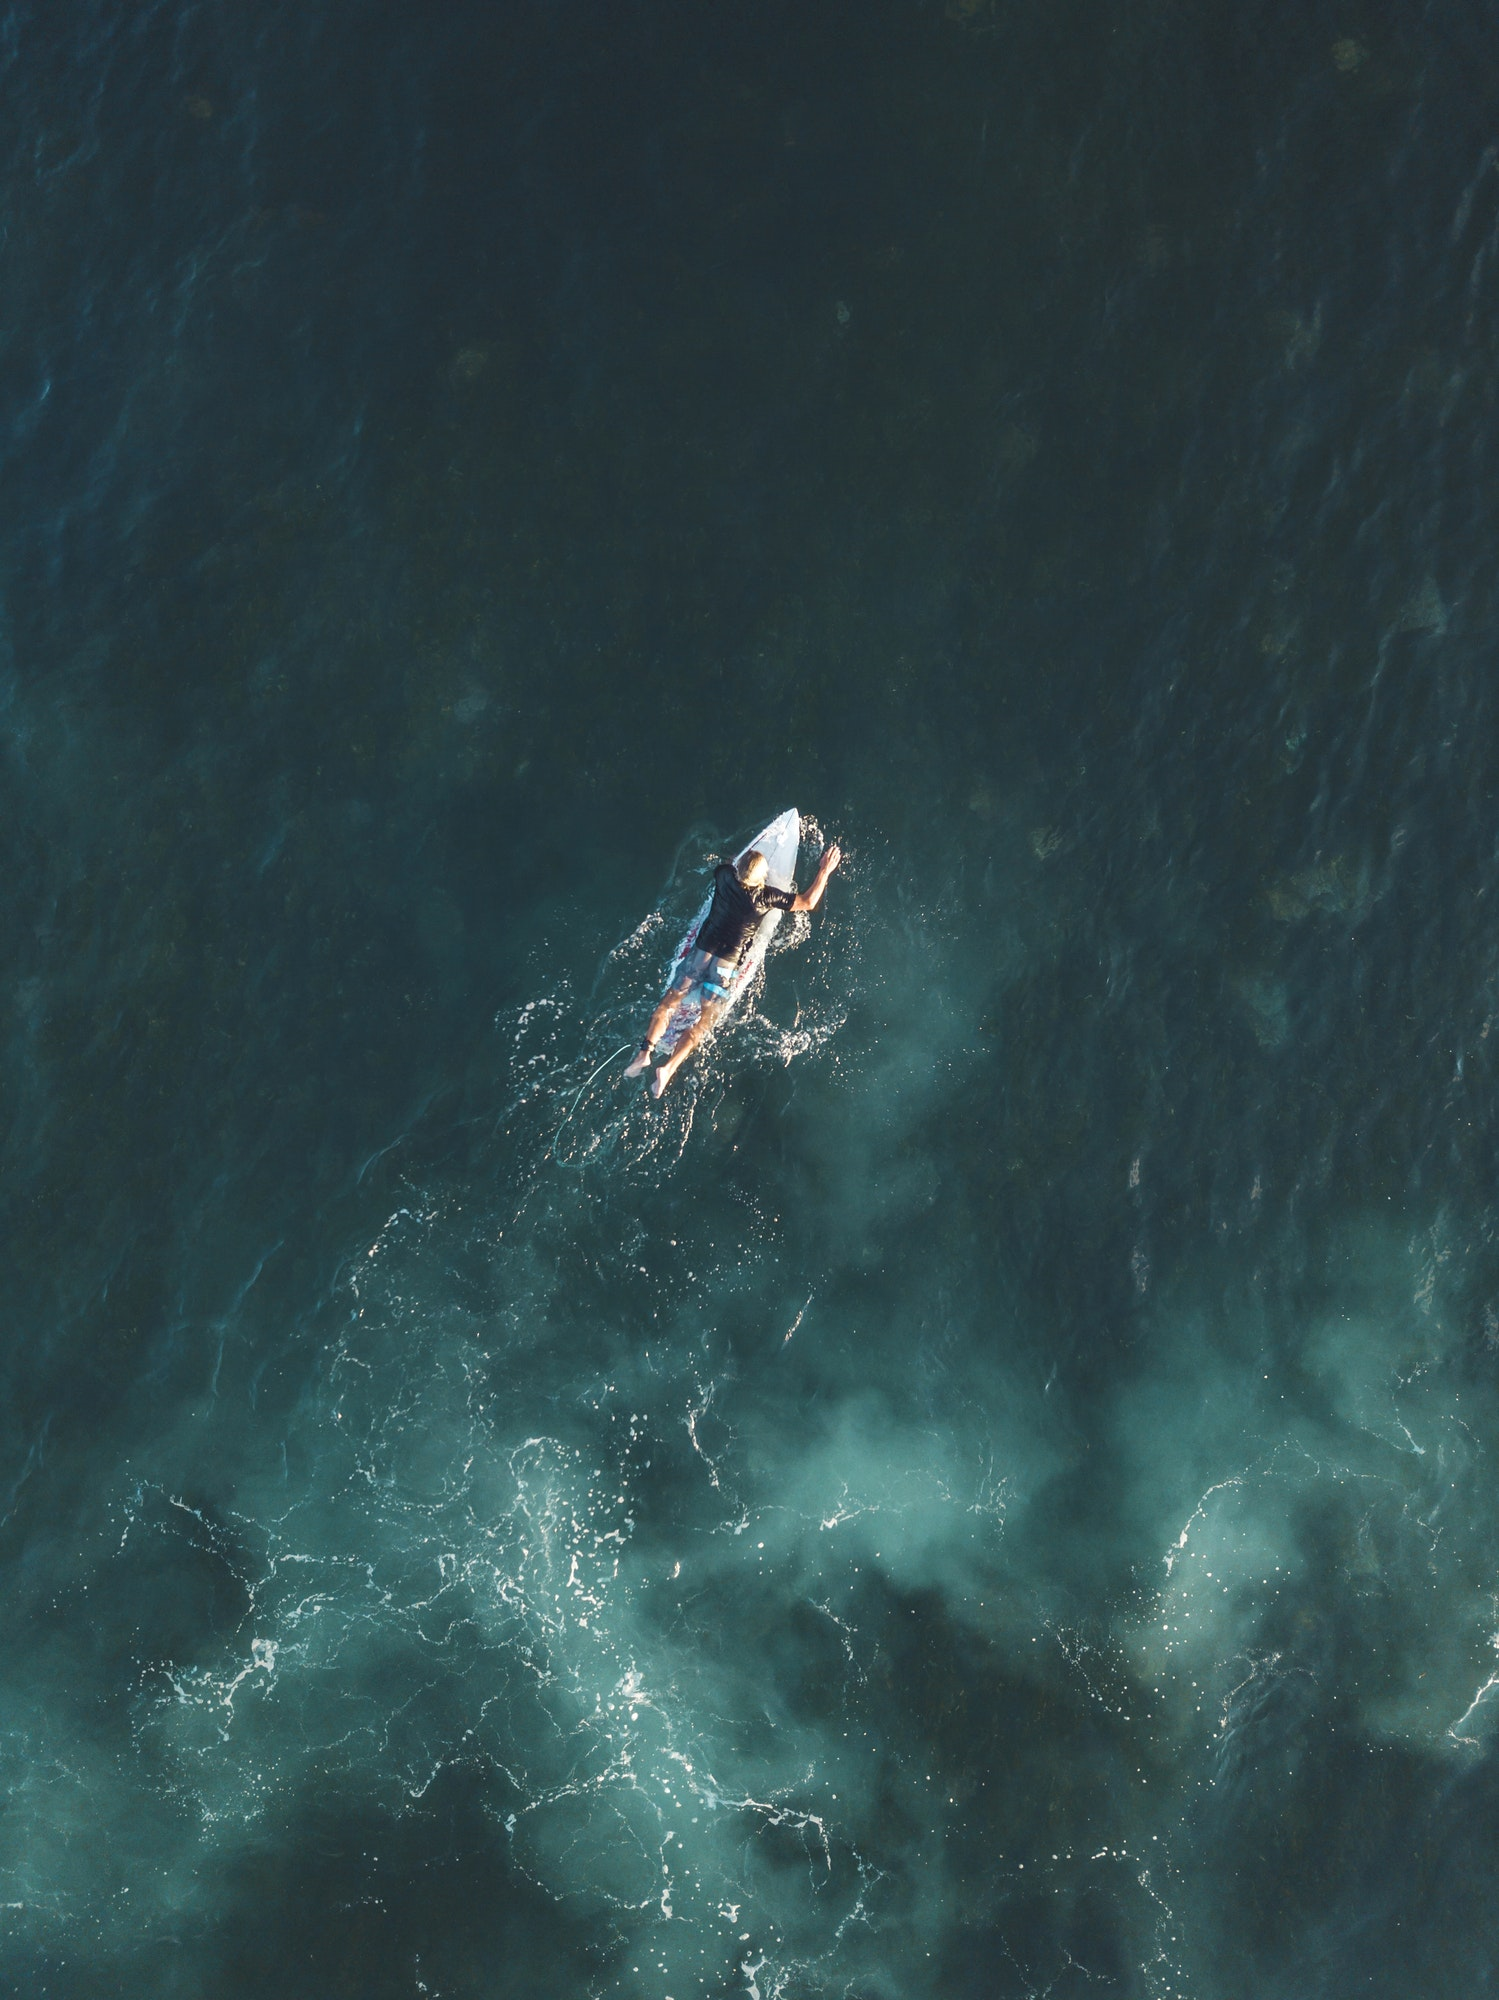 Aerial view of surfer,Bali,Indonesia